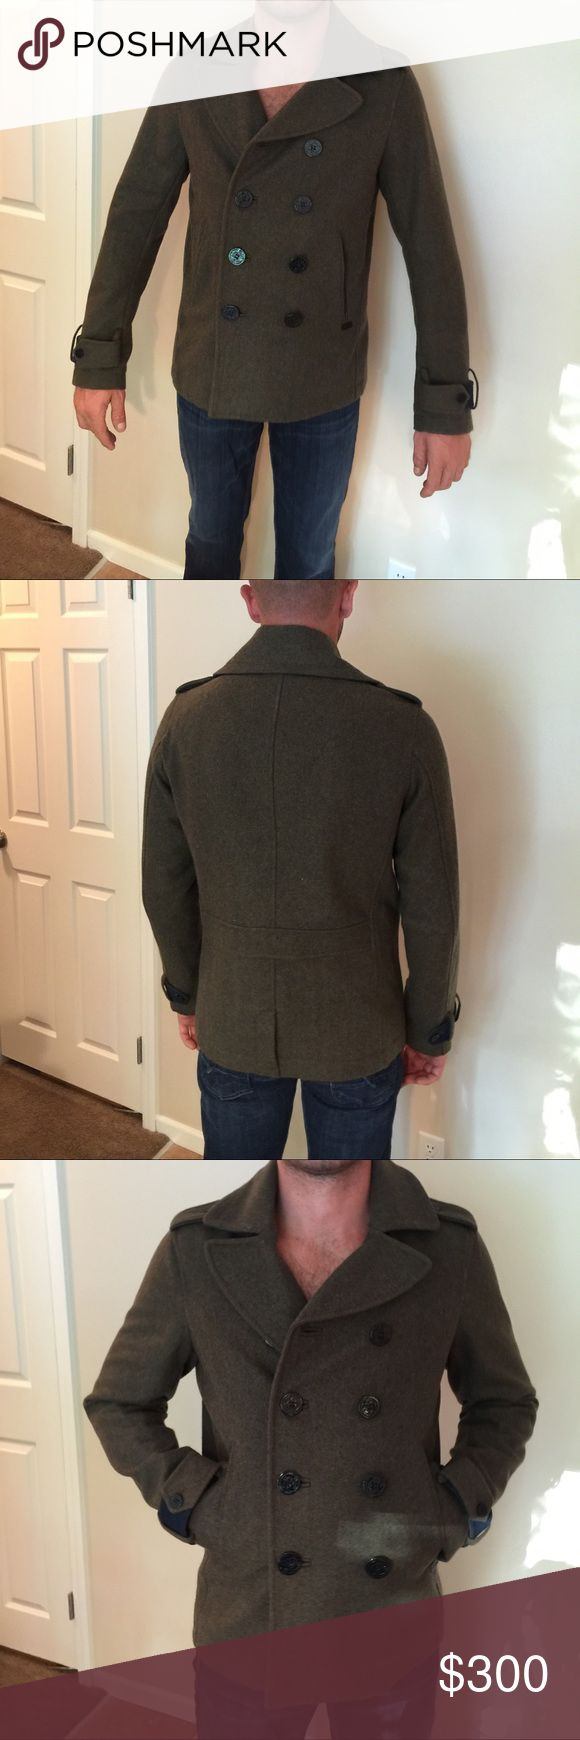 Mens diesel coat size large wool jacket color is olive green size is large never worn with tags Diesel Jackets & Coats Pea Coats